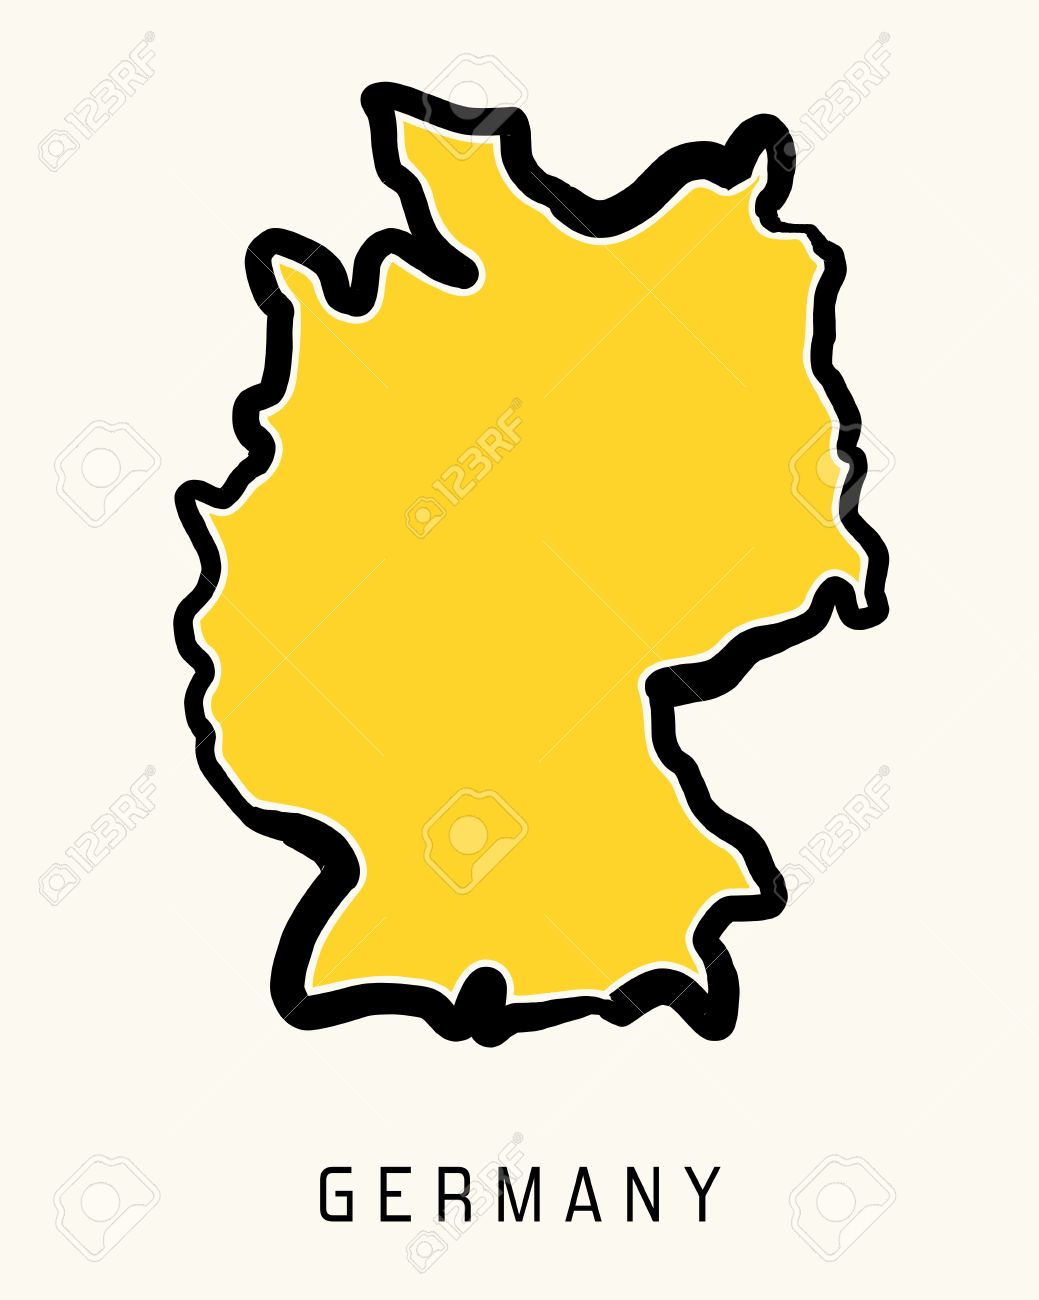 Germany Simple Map Outline Simplified Country Shape Map Vector - Germany map shape